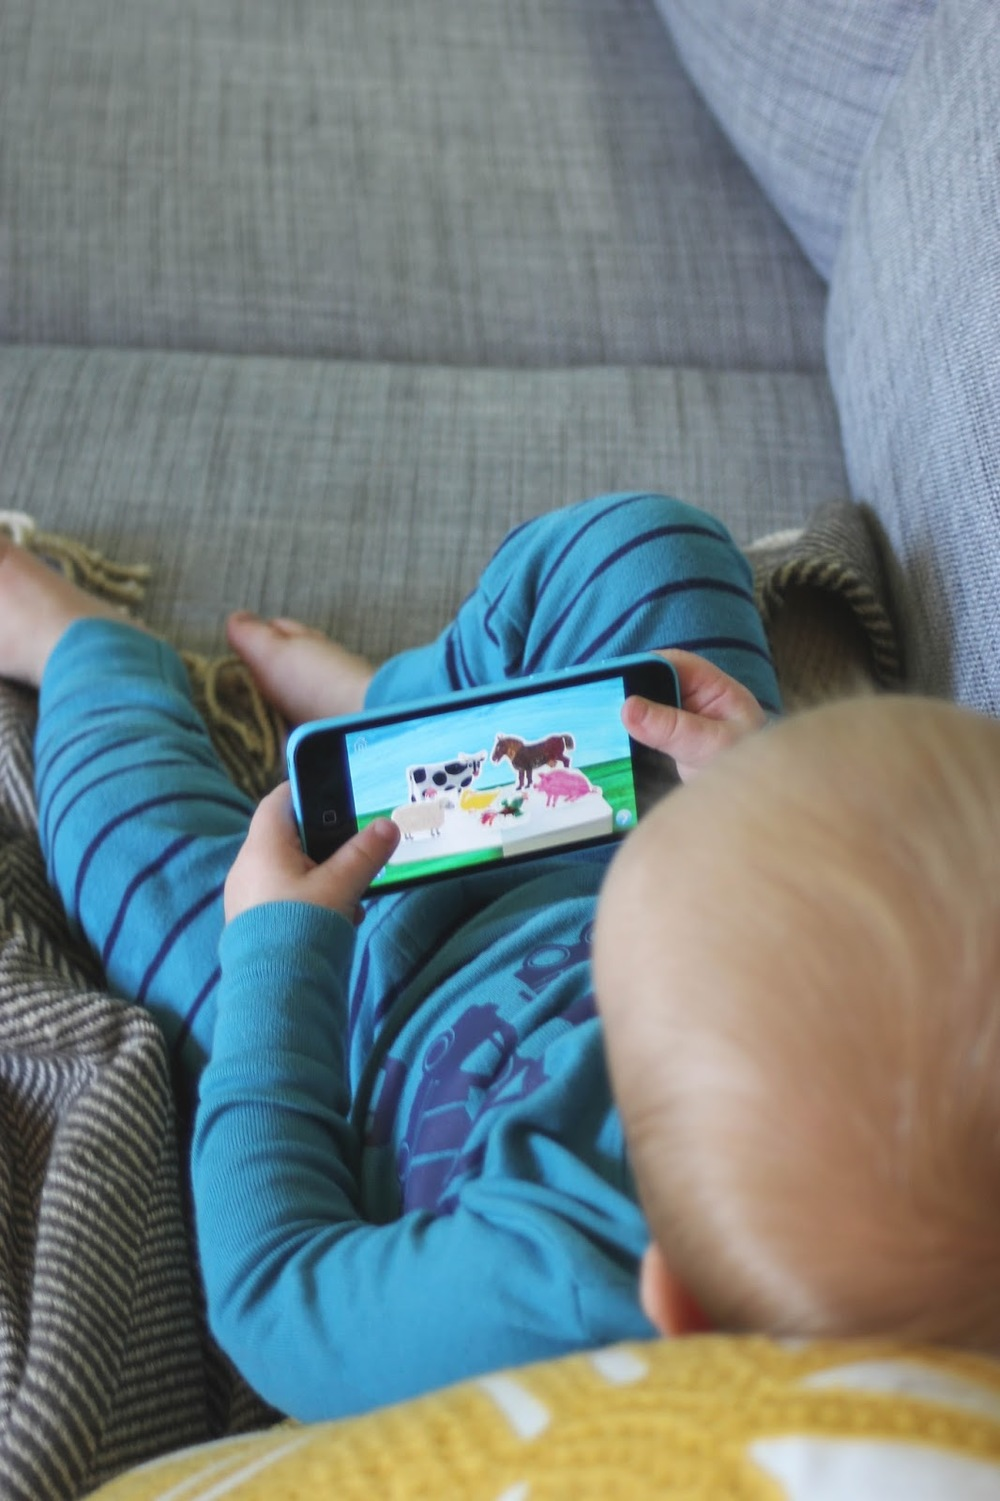 My son loves playing The Very Hungry Caterpillar First Words app and the others on this list...http://www.littlecityadventures.com/2015/10/educational-and-fun-apps-for-toddlers.html